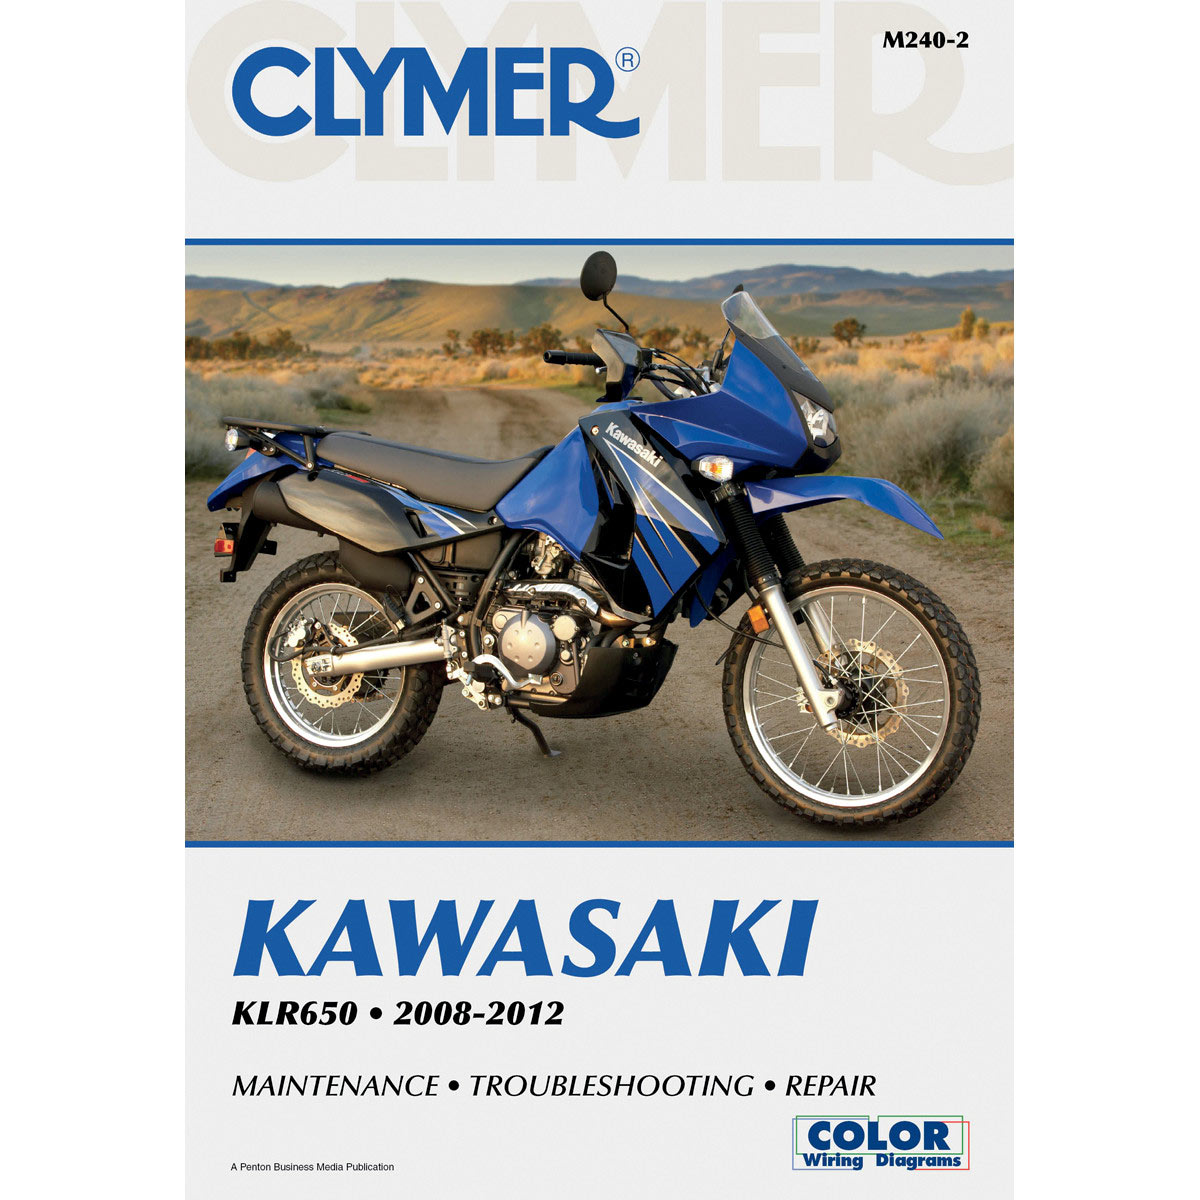 Kawasaki Klr 250 Wiring Diagram Electrical Klr650 A9 1995 Motorcycle All 2014 650 Wire Data Schema U2022 Concours